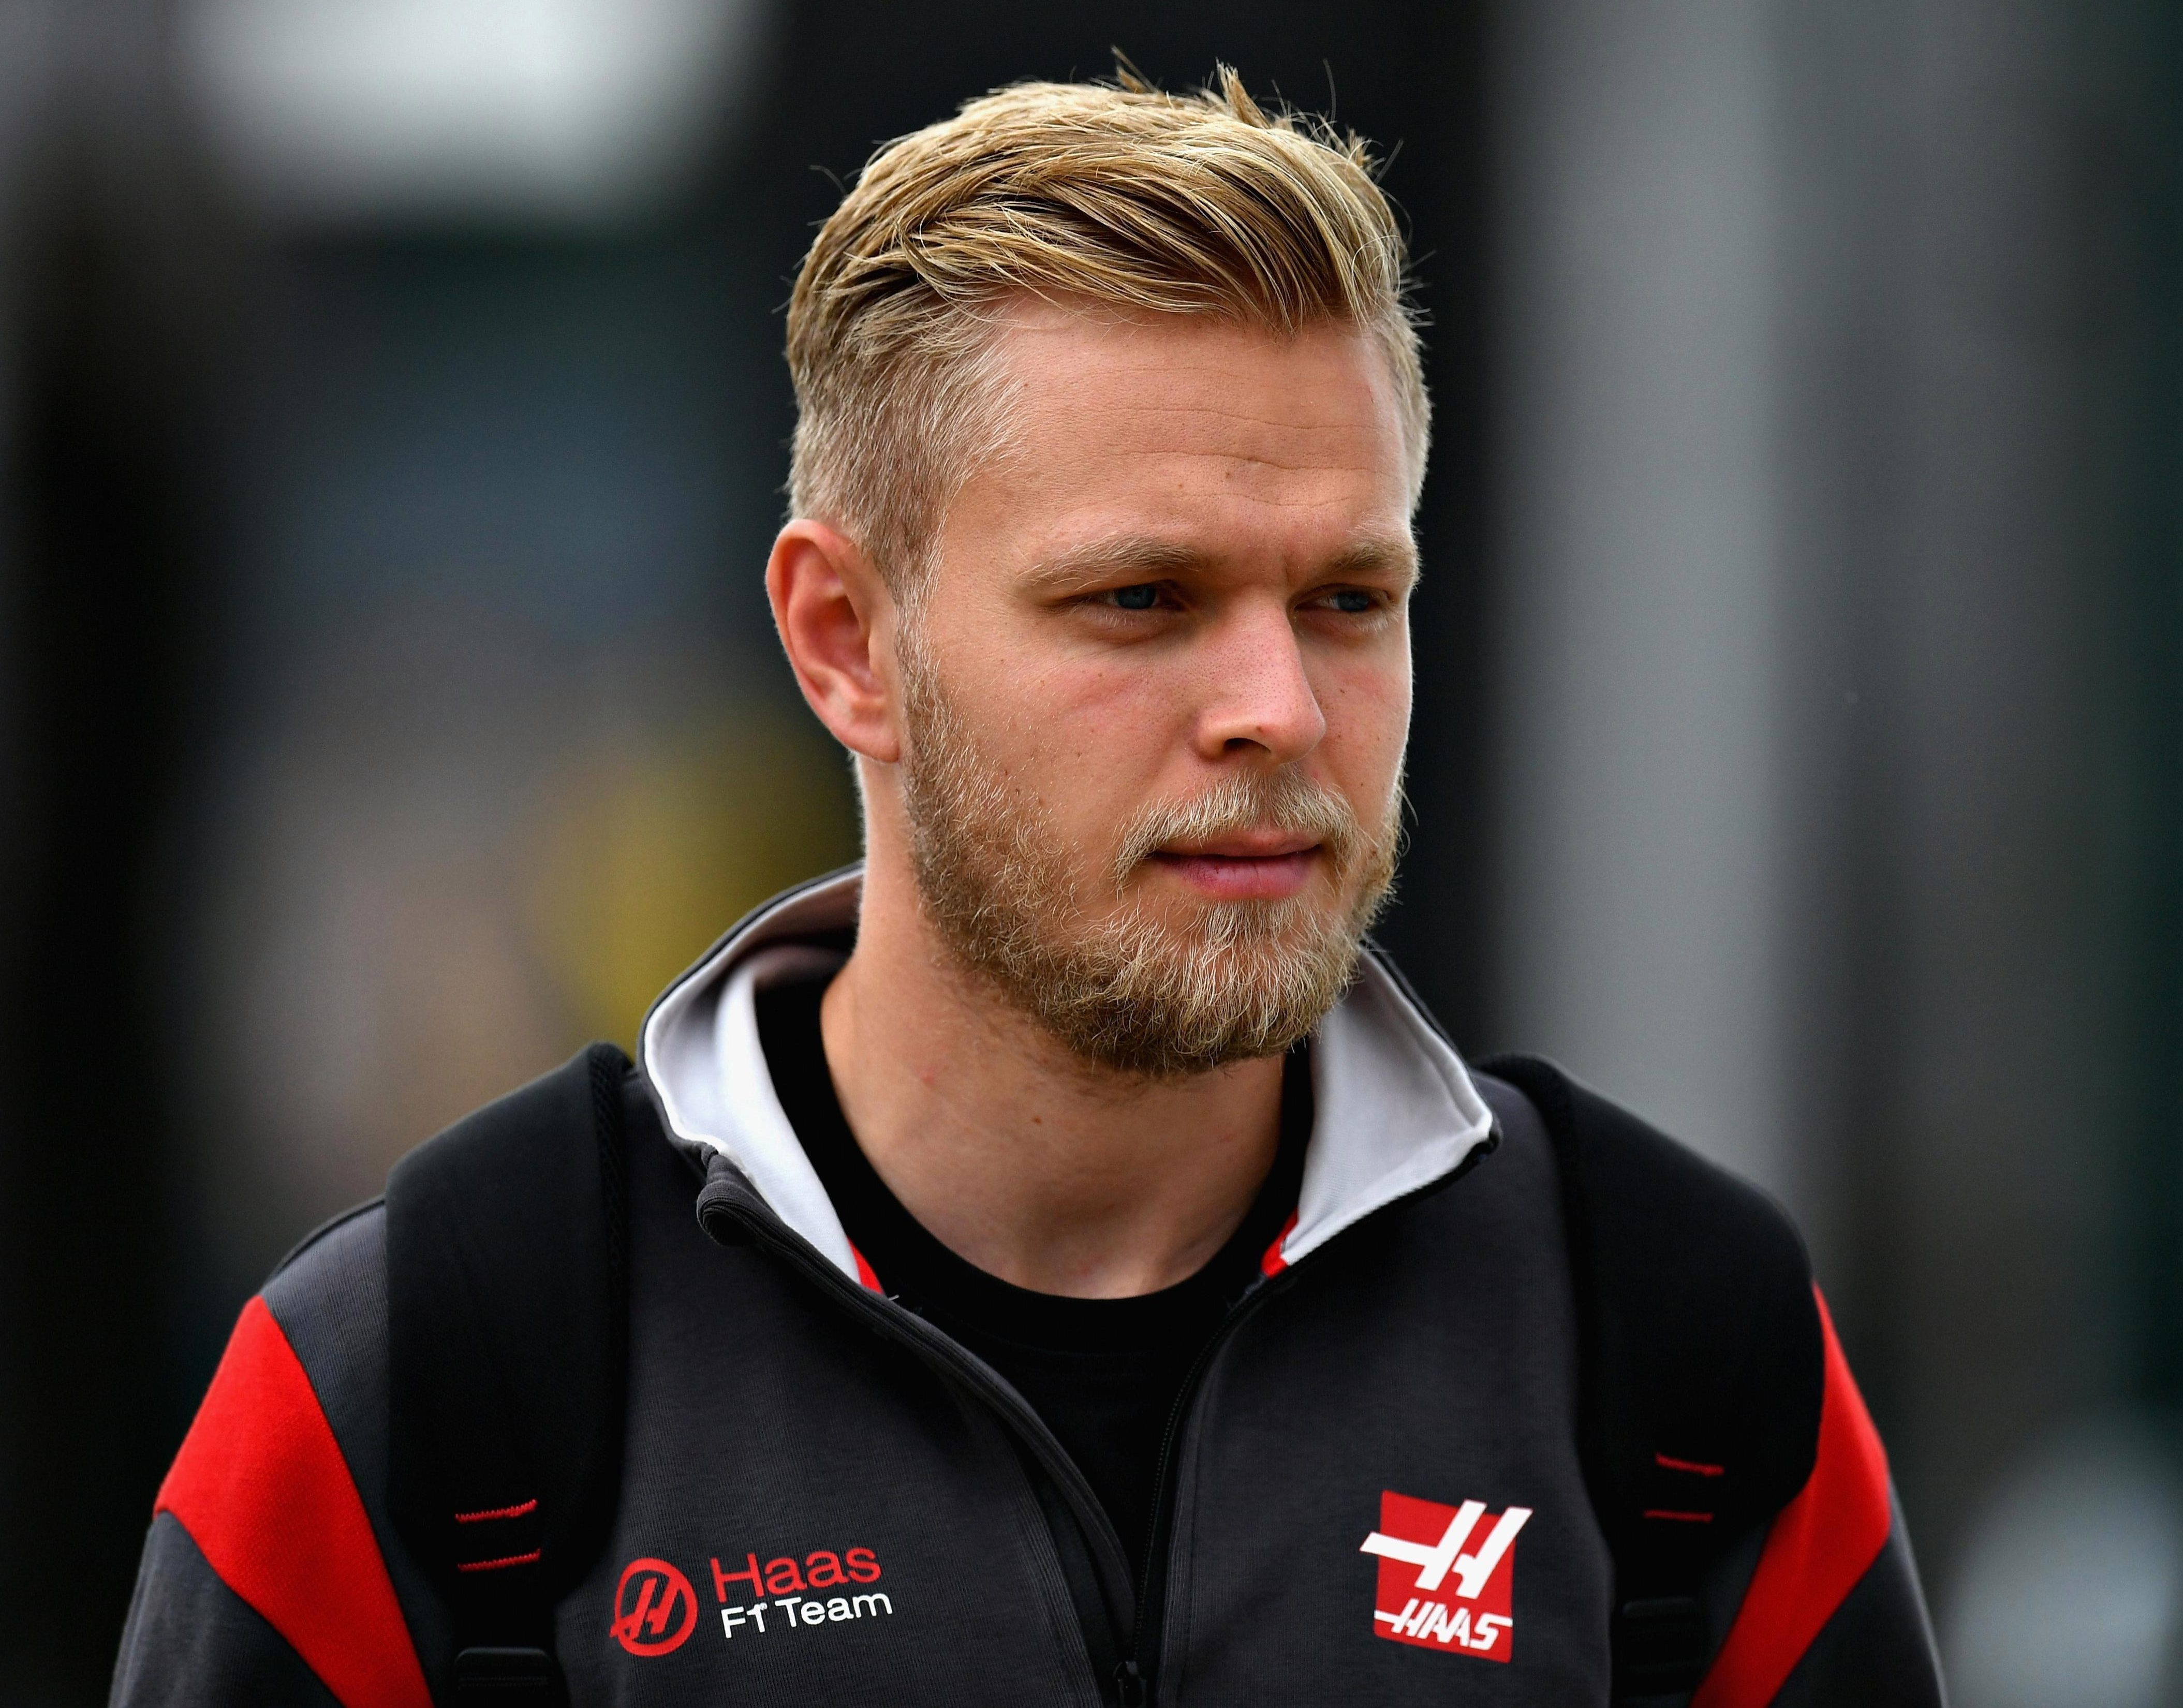 F1 racer Kevin Magnussen supports the new W Series, saying it opens up opportunities for more female drivers